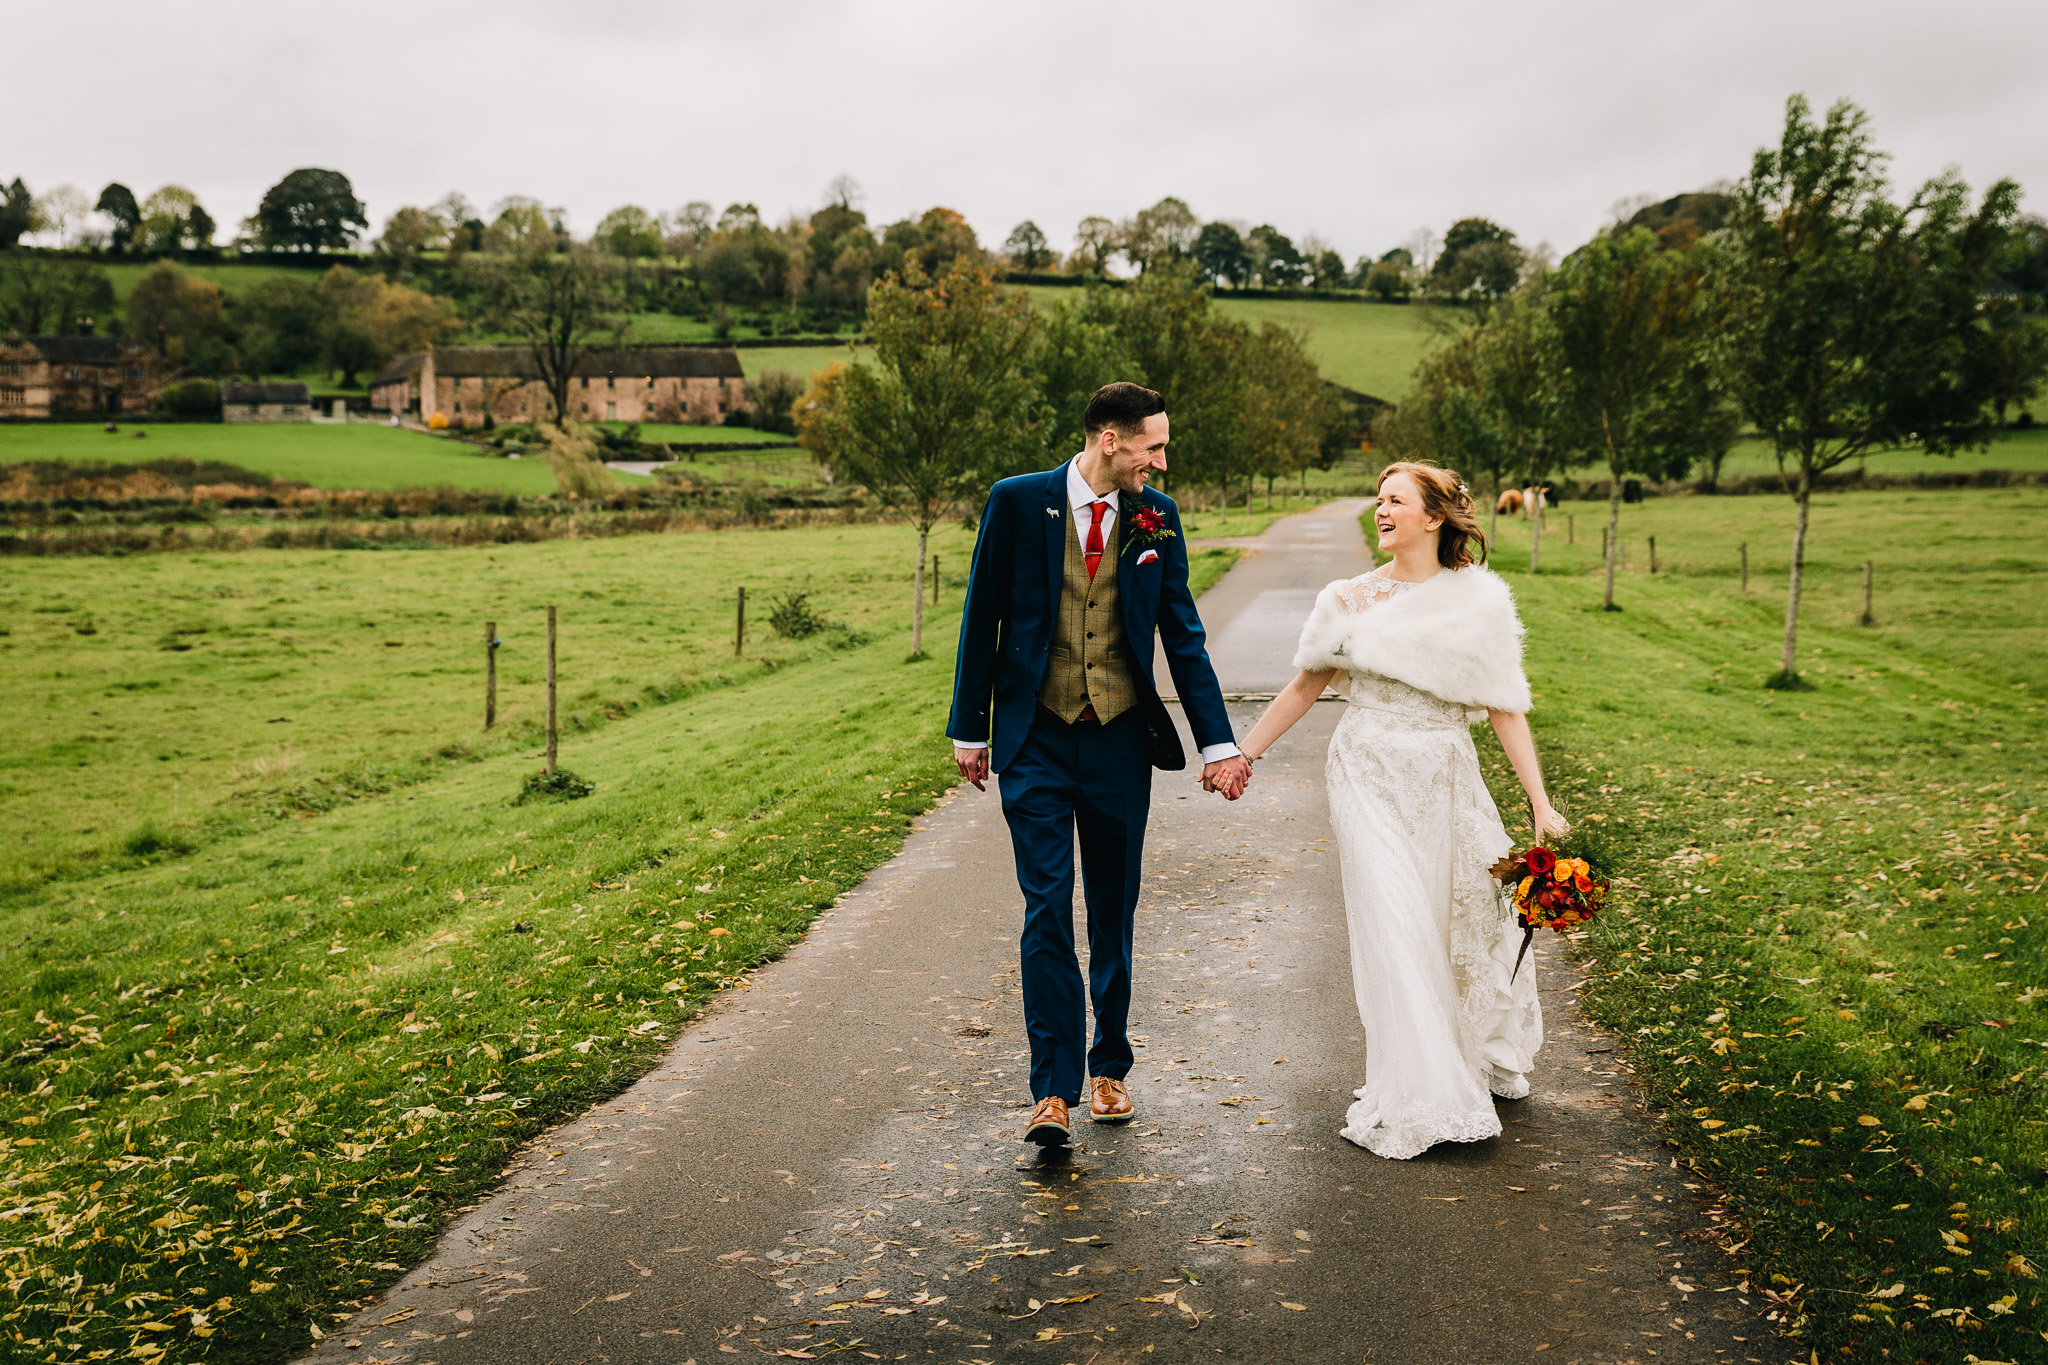 NATURAL CREATIVE WEDDING PICTURE IN STAFFORDSHIRE